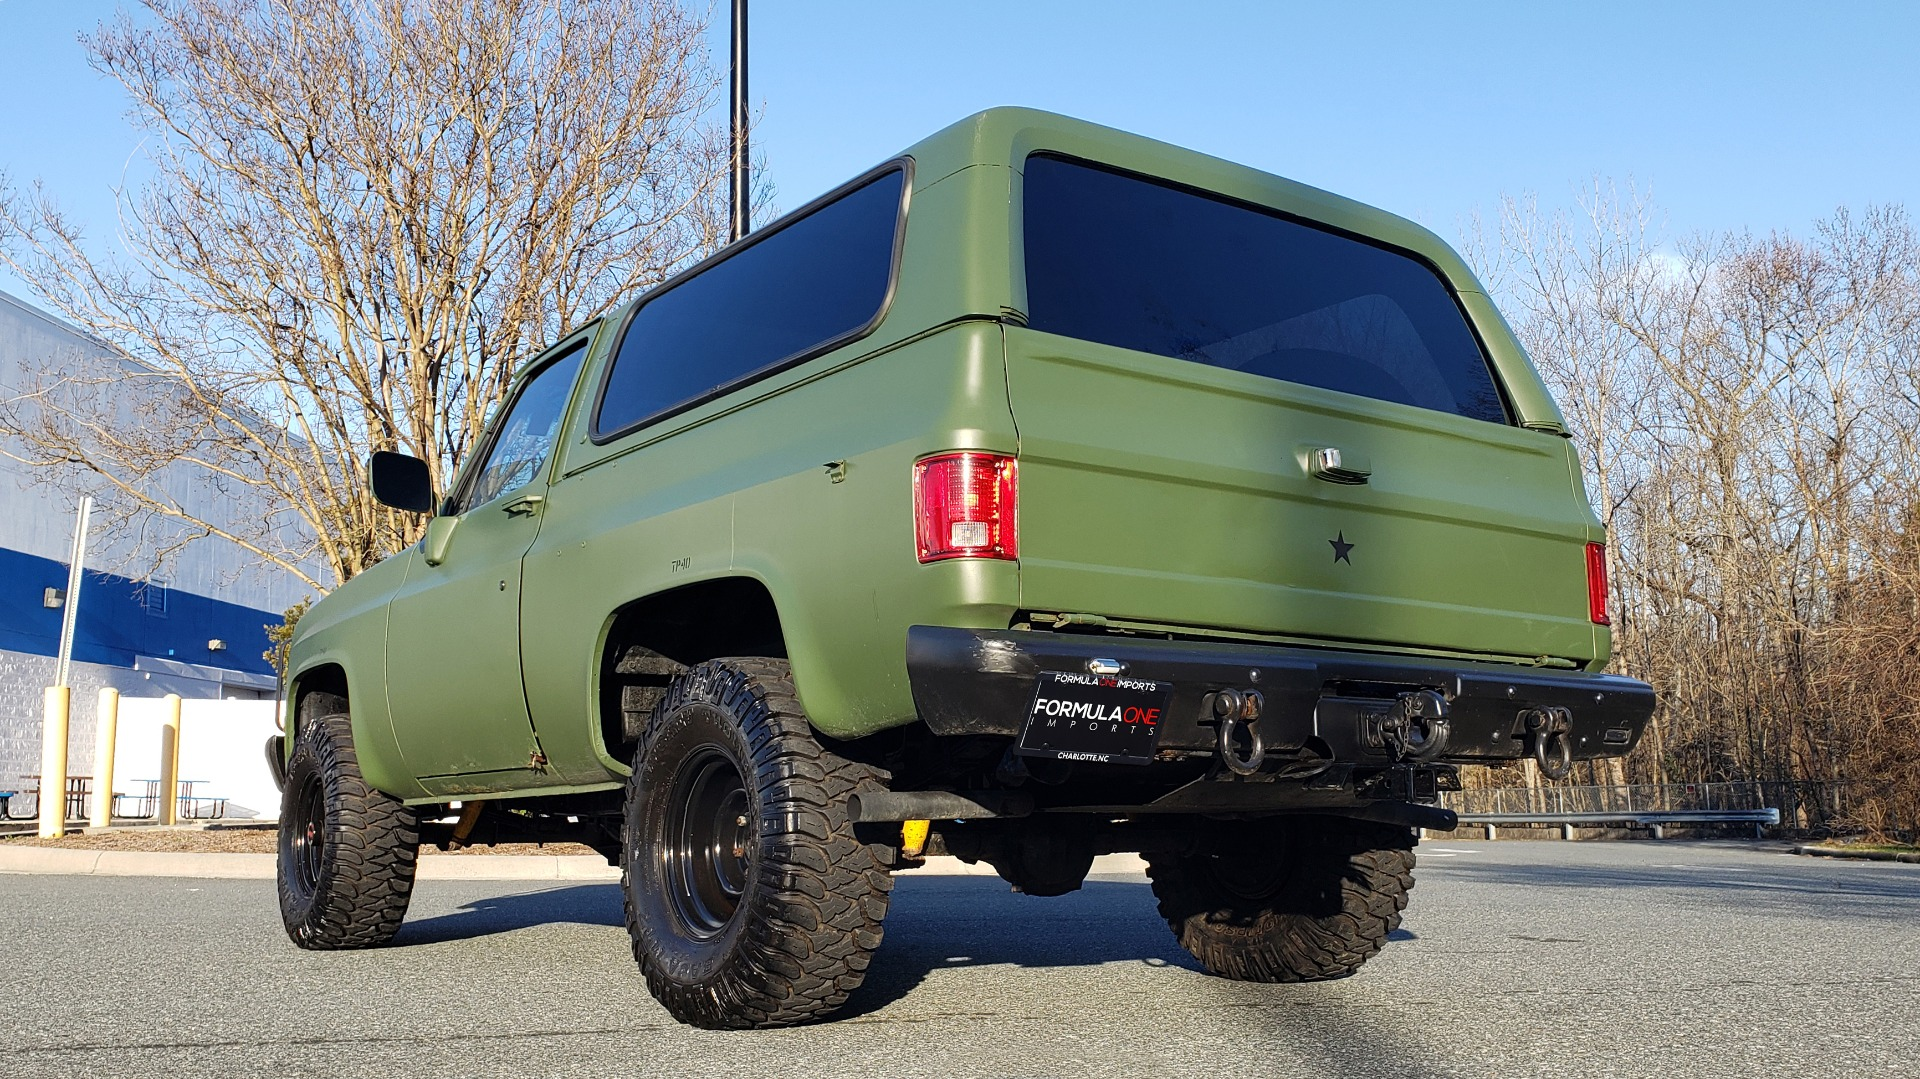 Used 1985 Chevrolet BLAZER D10 MILITARY SUV / 4X4 / 6.2L DIESEL V8 / VINTAGE AIR for sale $15,000 at Formula Imports in Charlotte NC 28227 3